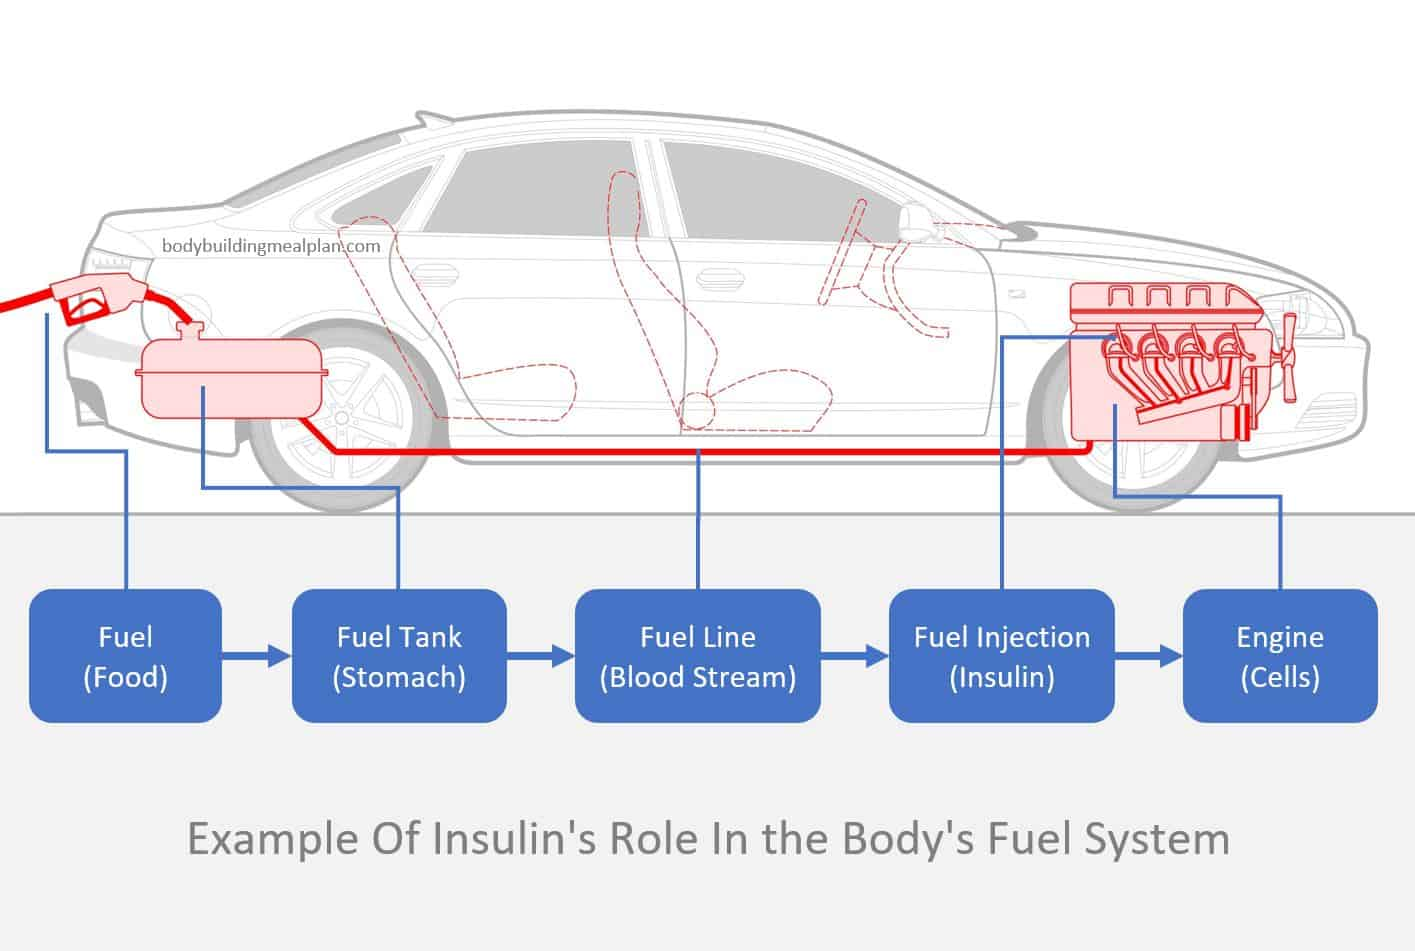 role of insulin in body fuel system